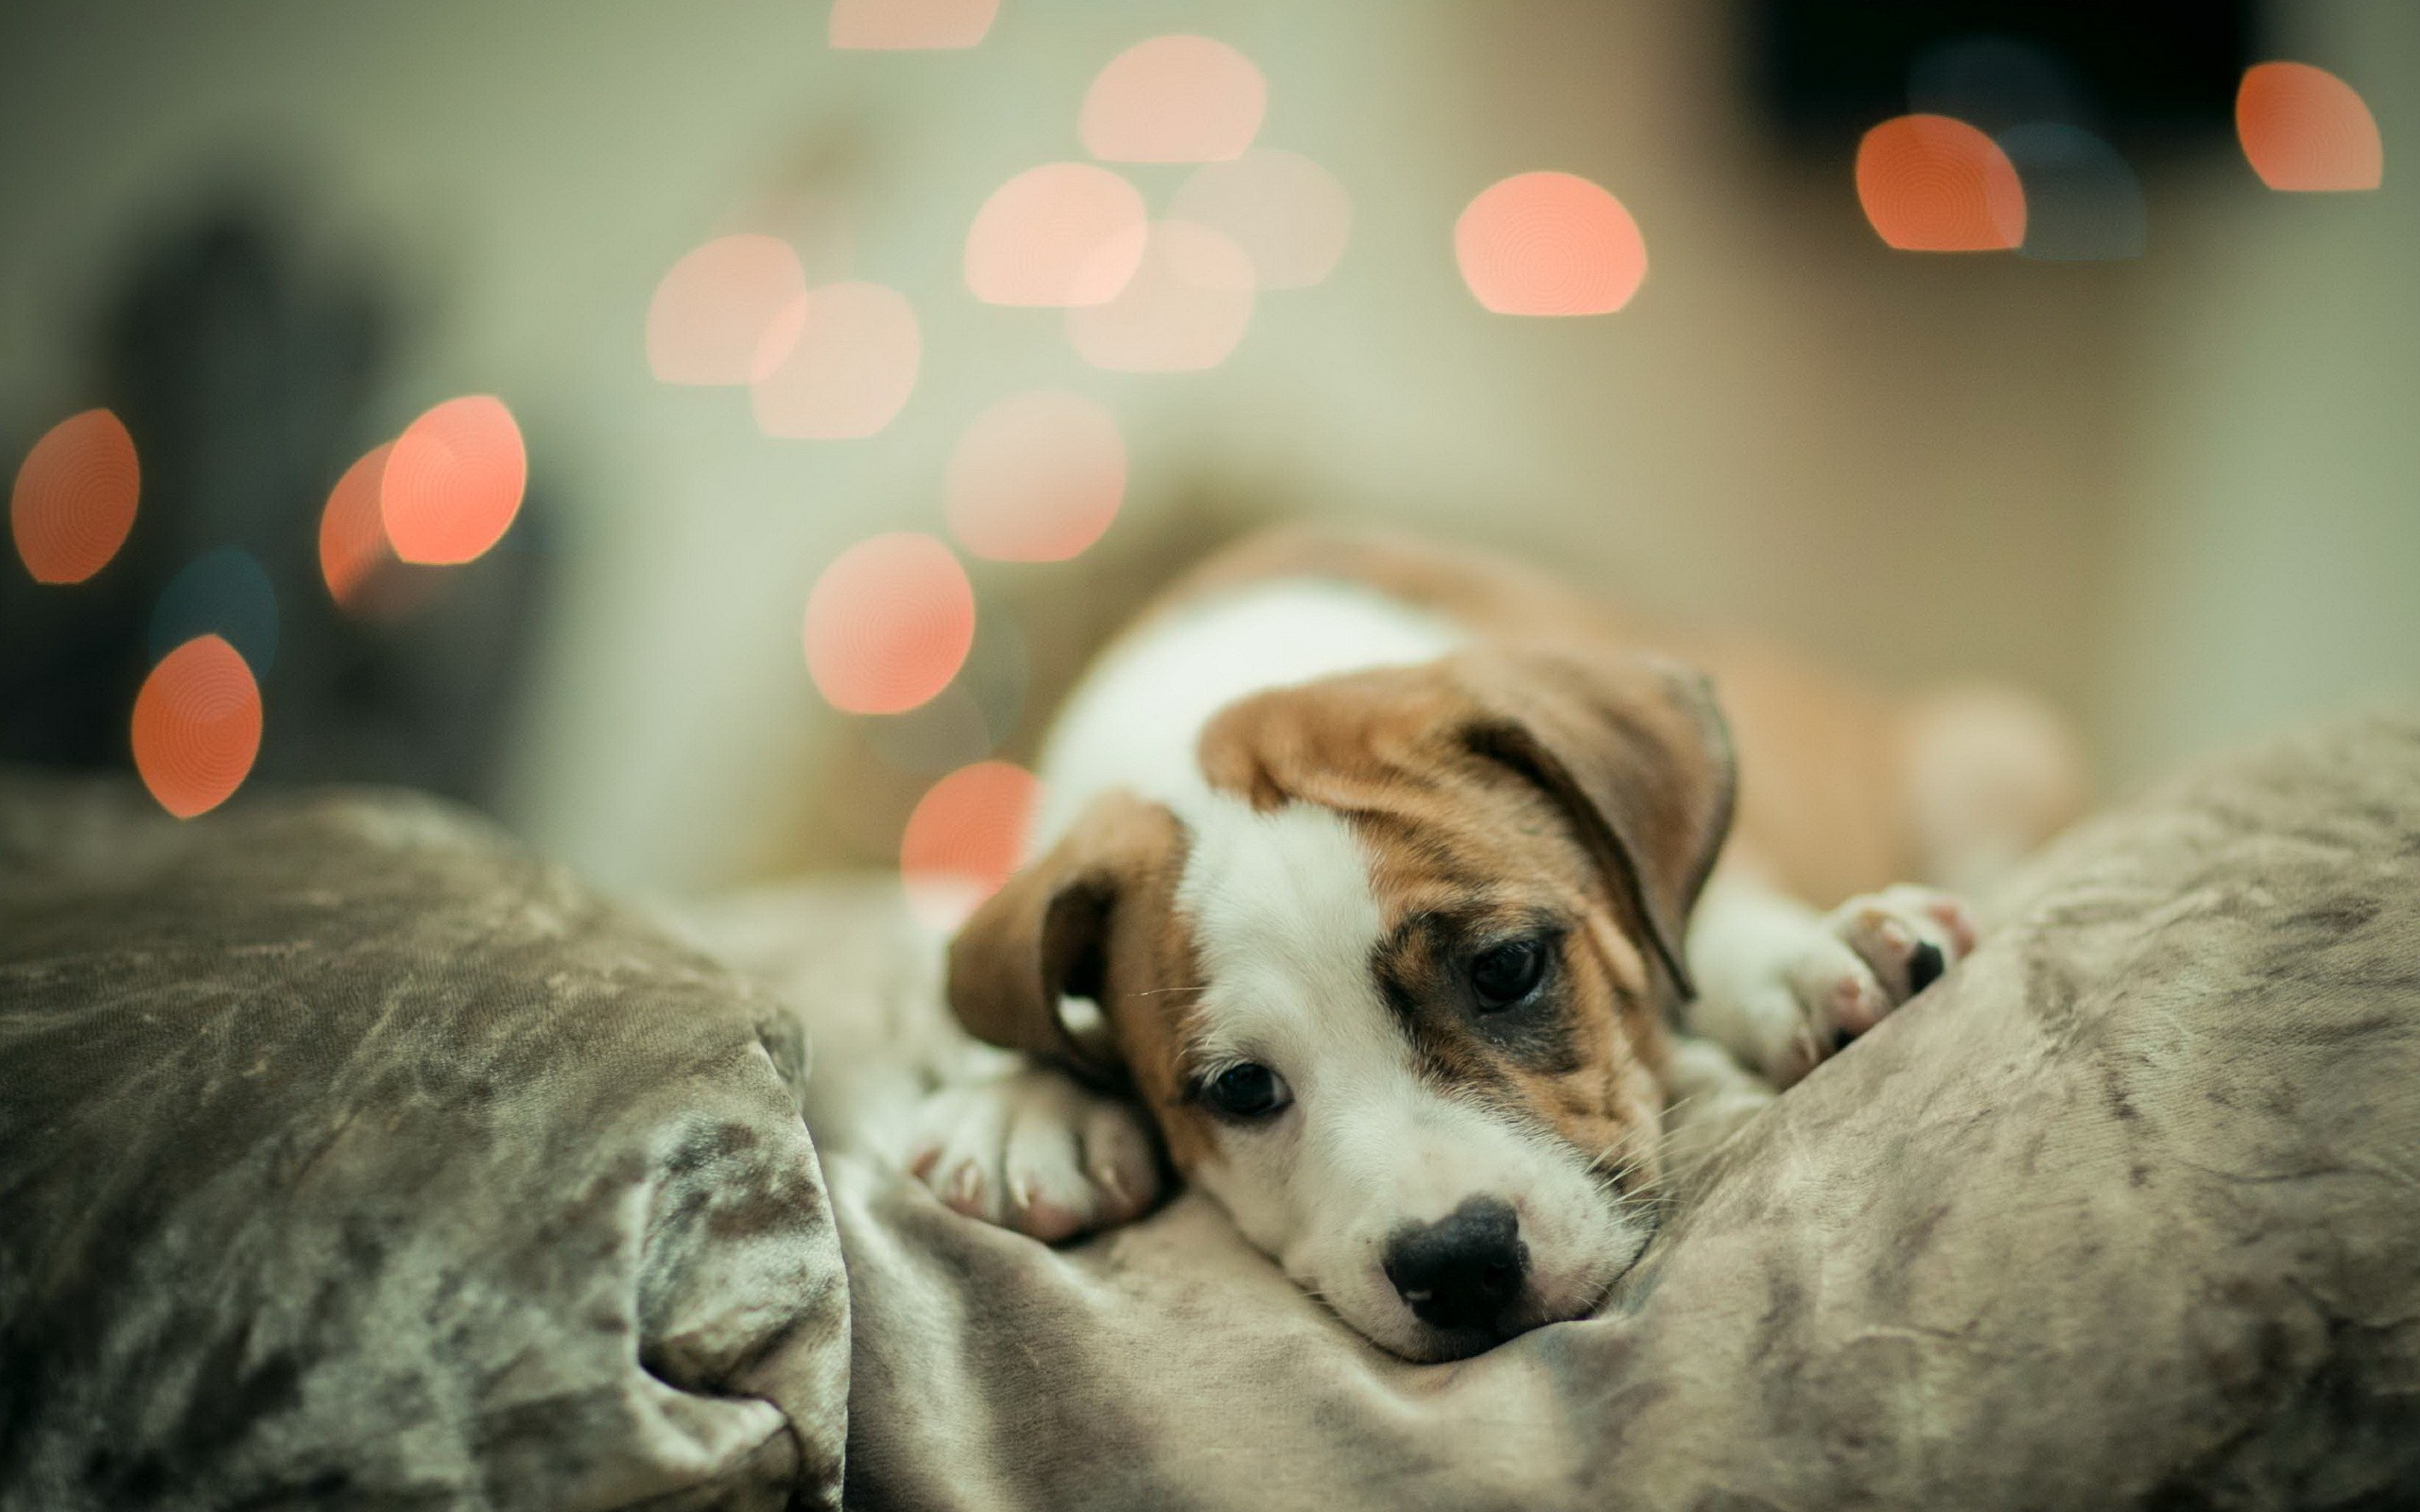 This one is like the perfect example of a cute dog wallpaper 2560x1600